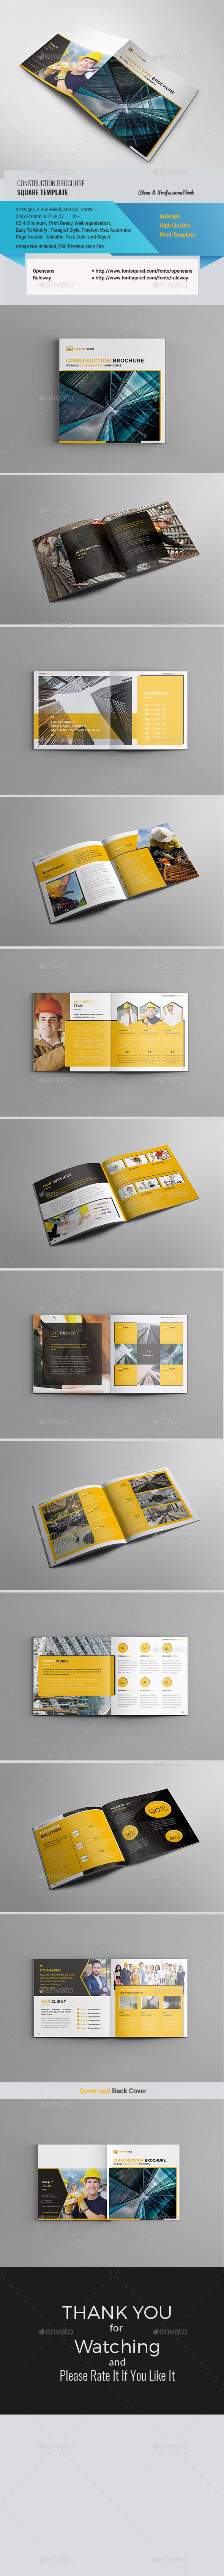 Square Construction Brochure - Portfolio Brochures